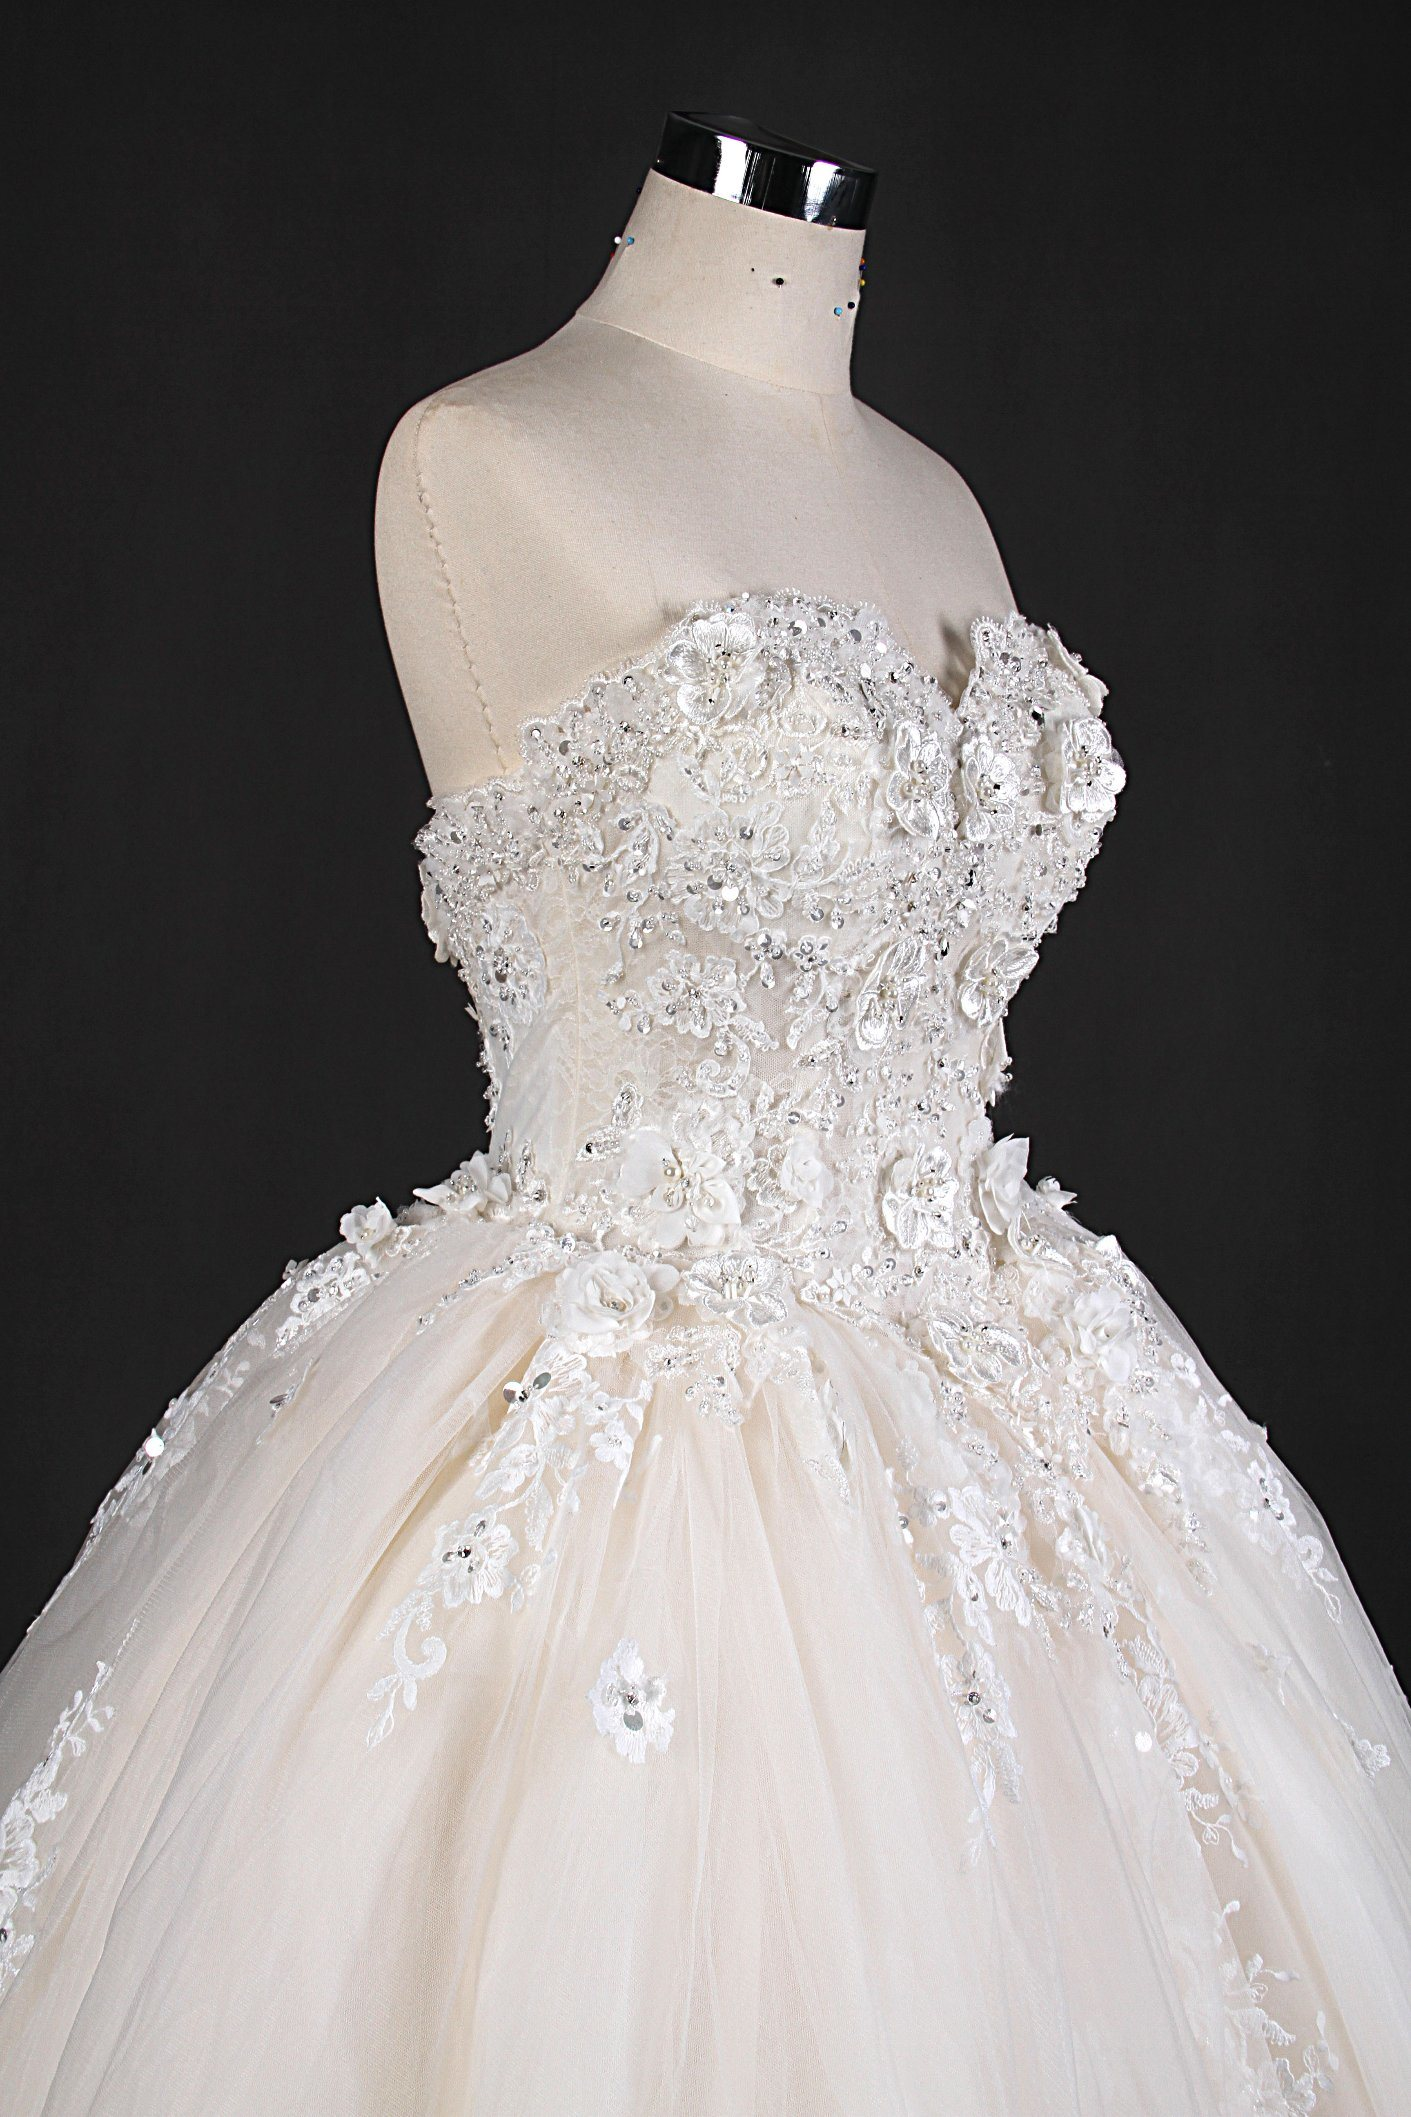 Strapless Beads Flower Lace Ball Prom Bridal Dresses Wedding Gown